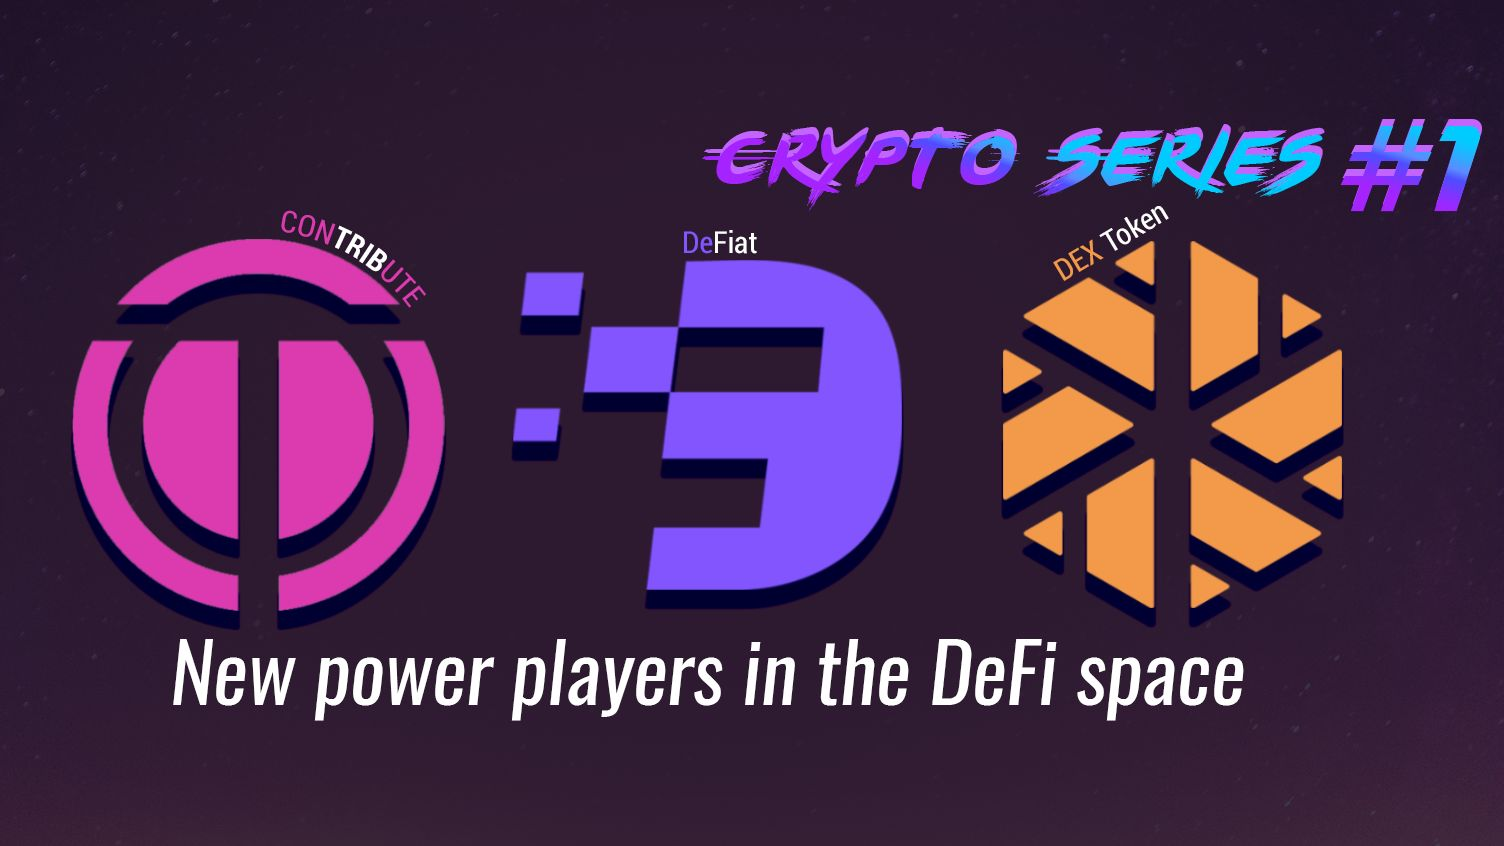 /crypto-series-1-new-power-players-entering-the-defi-space-v8113w1d feature image